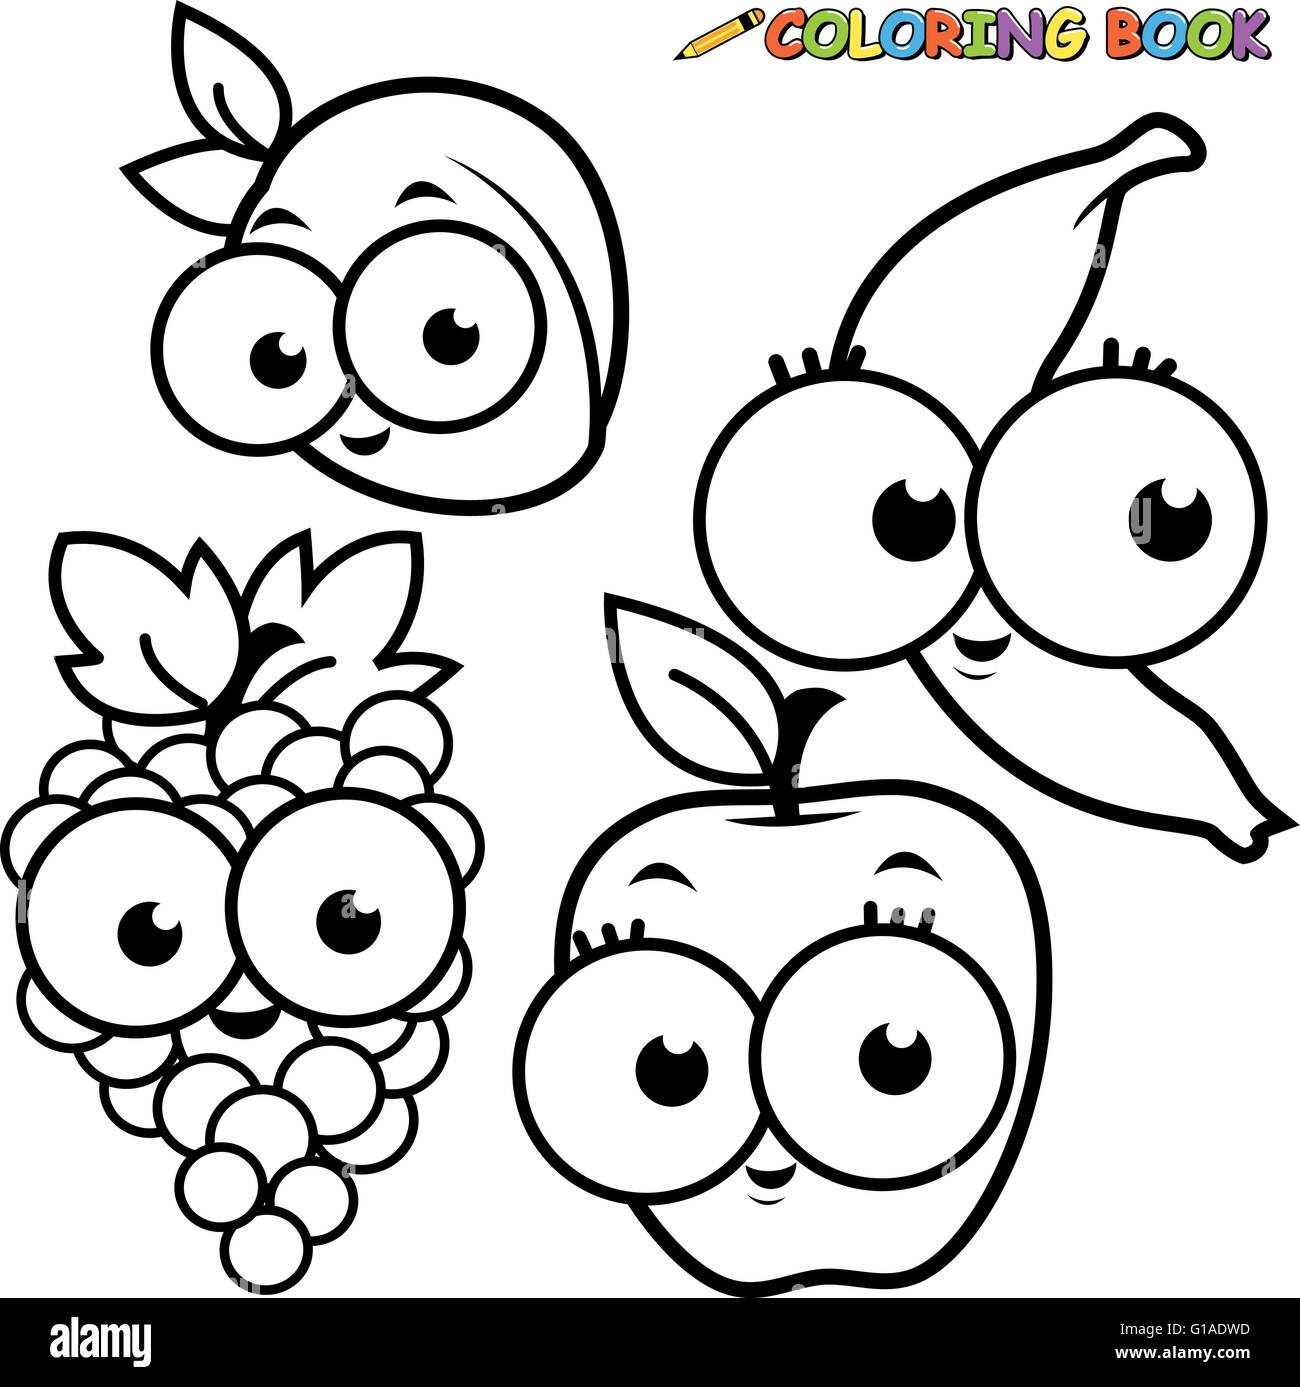 Black And White Outline Image Of Fruit Cartoons Apricot Banana Stock Vector Image Art Alamy